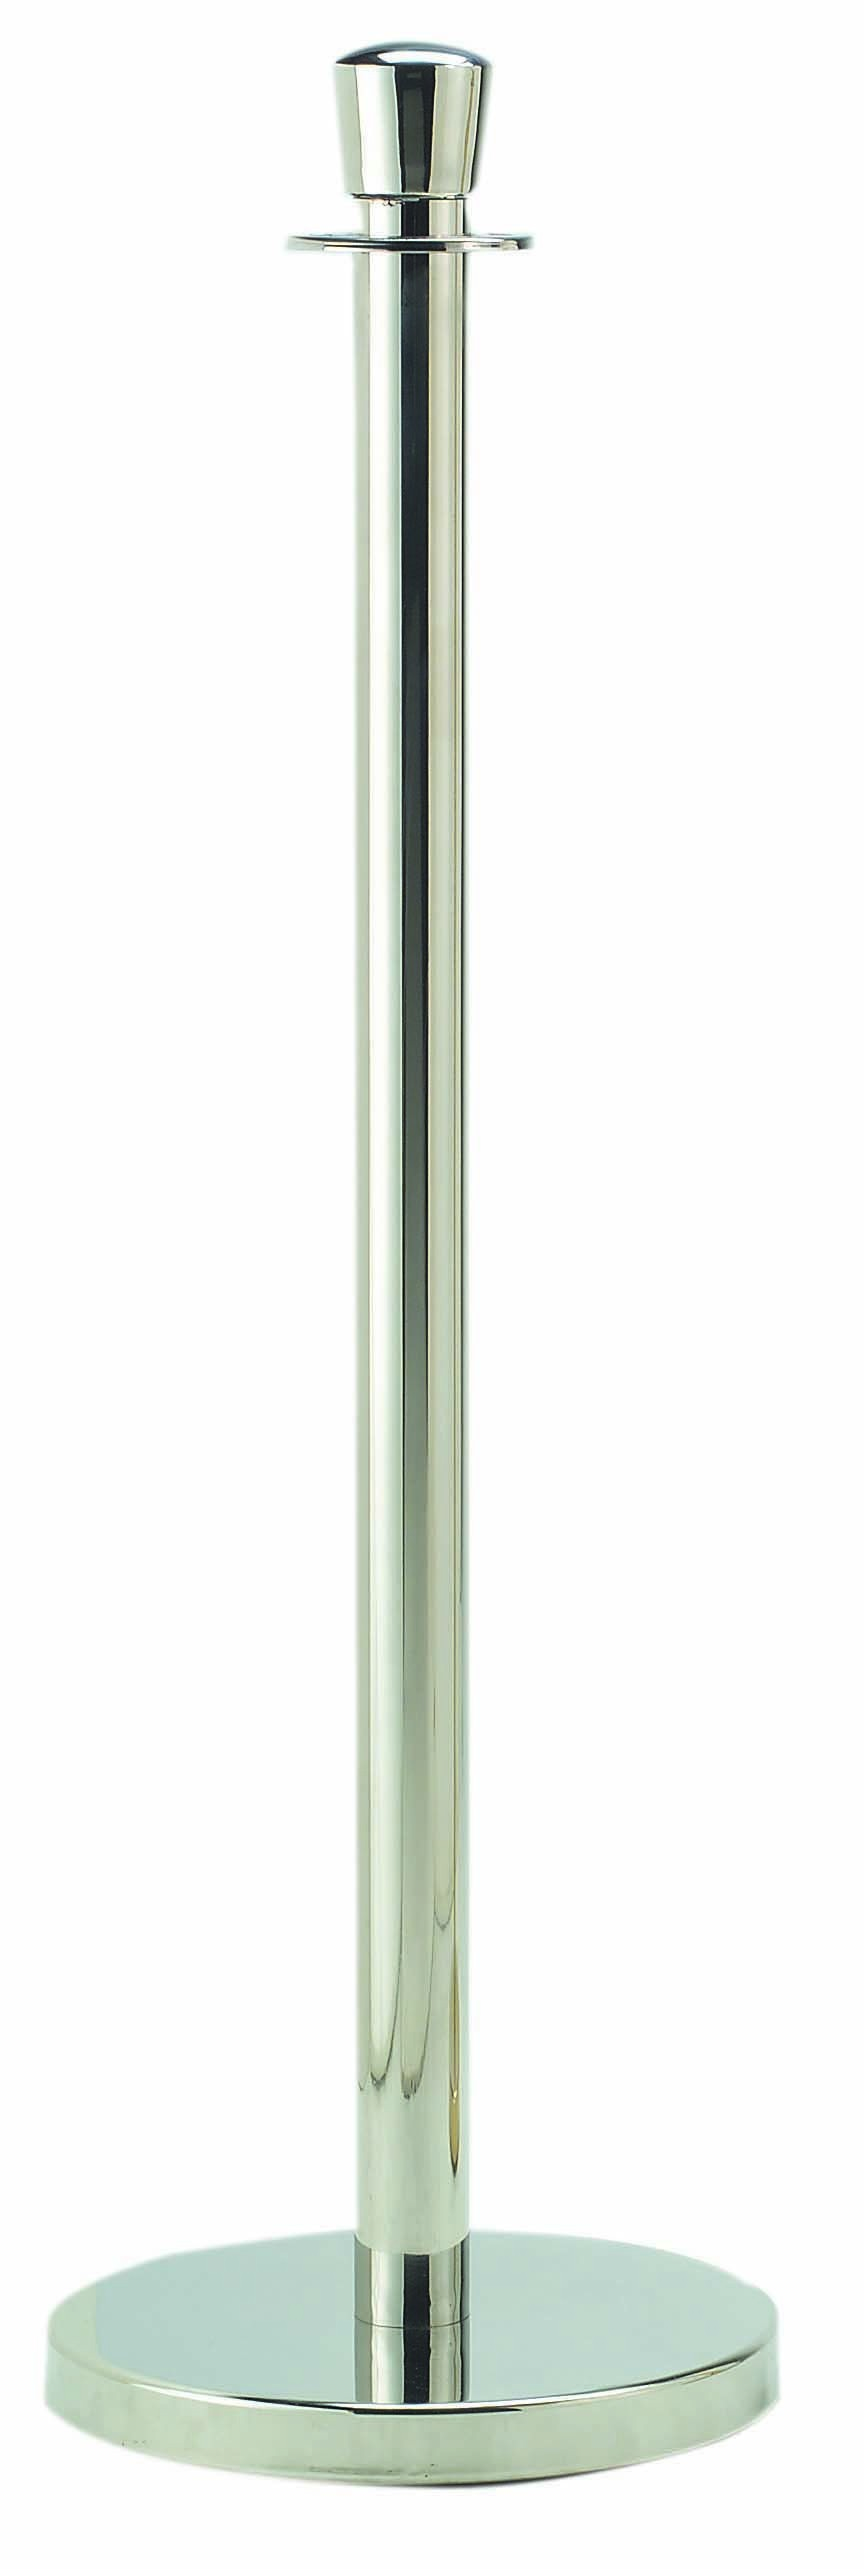 Aarco Products LC-7 Form-A-Line Traditional Rope Post, Chrome